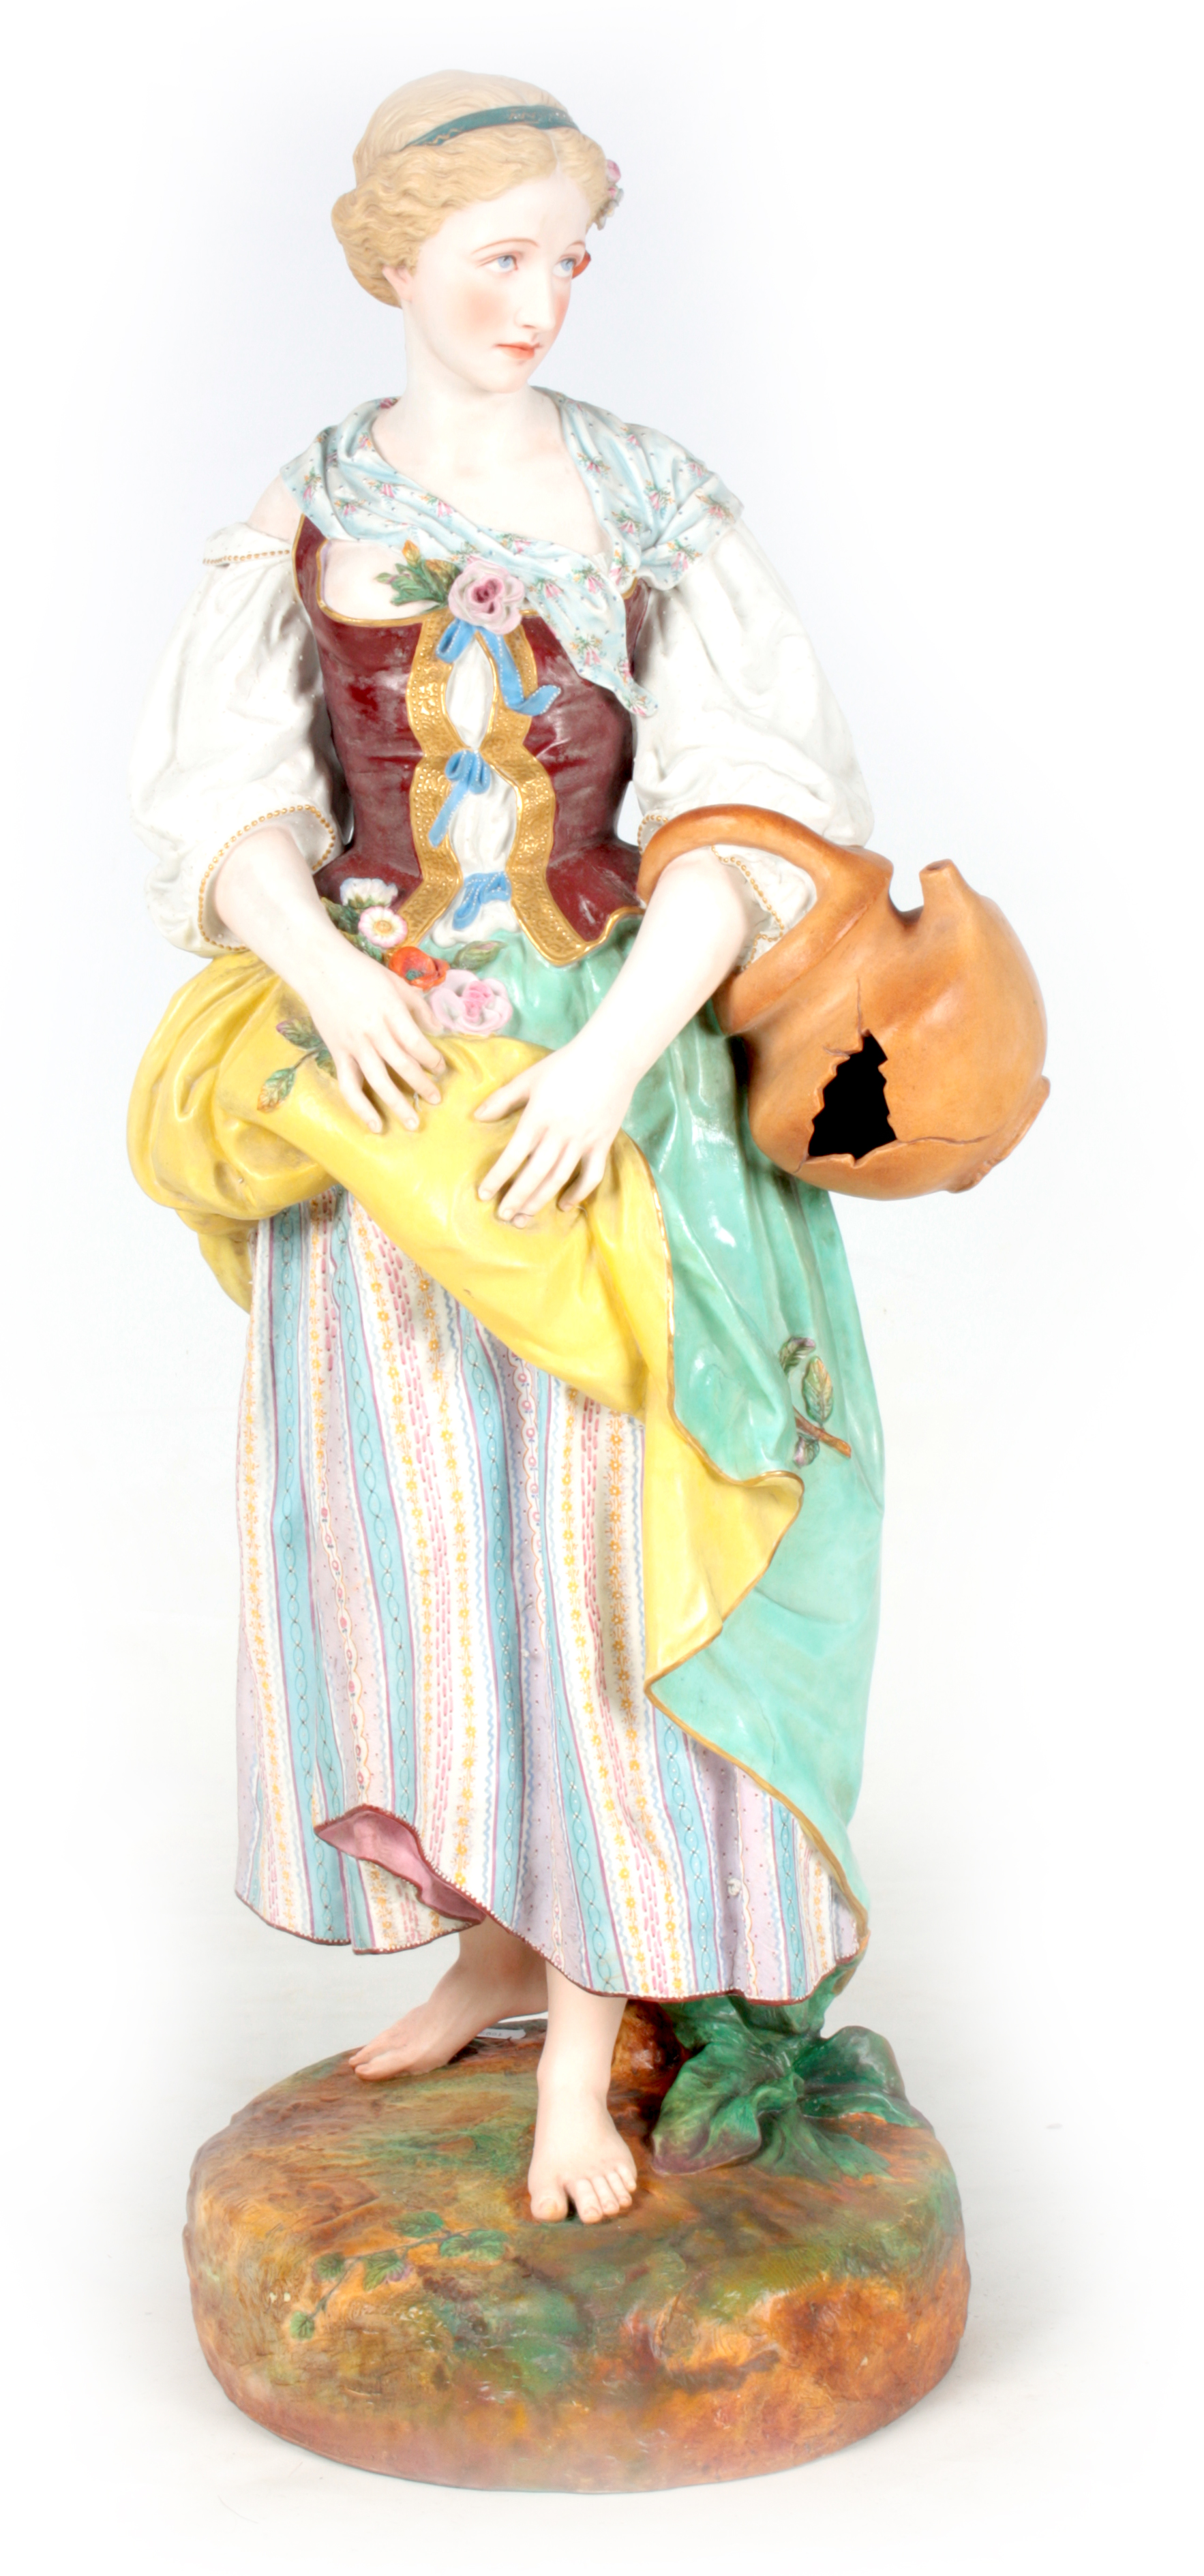 A 19TH CENTURY MASSIVE CONTINENTAL POLYCHROME STANDING BISQUE FIGURE OF A YOUNG LADY on a